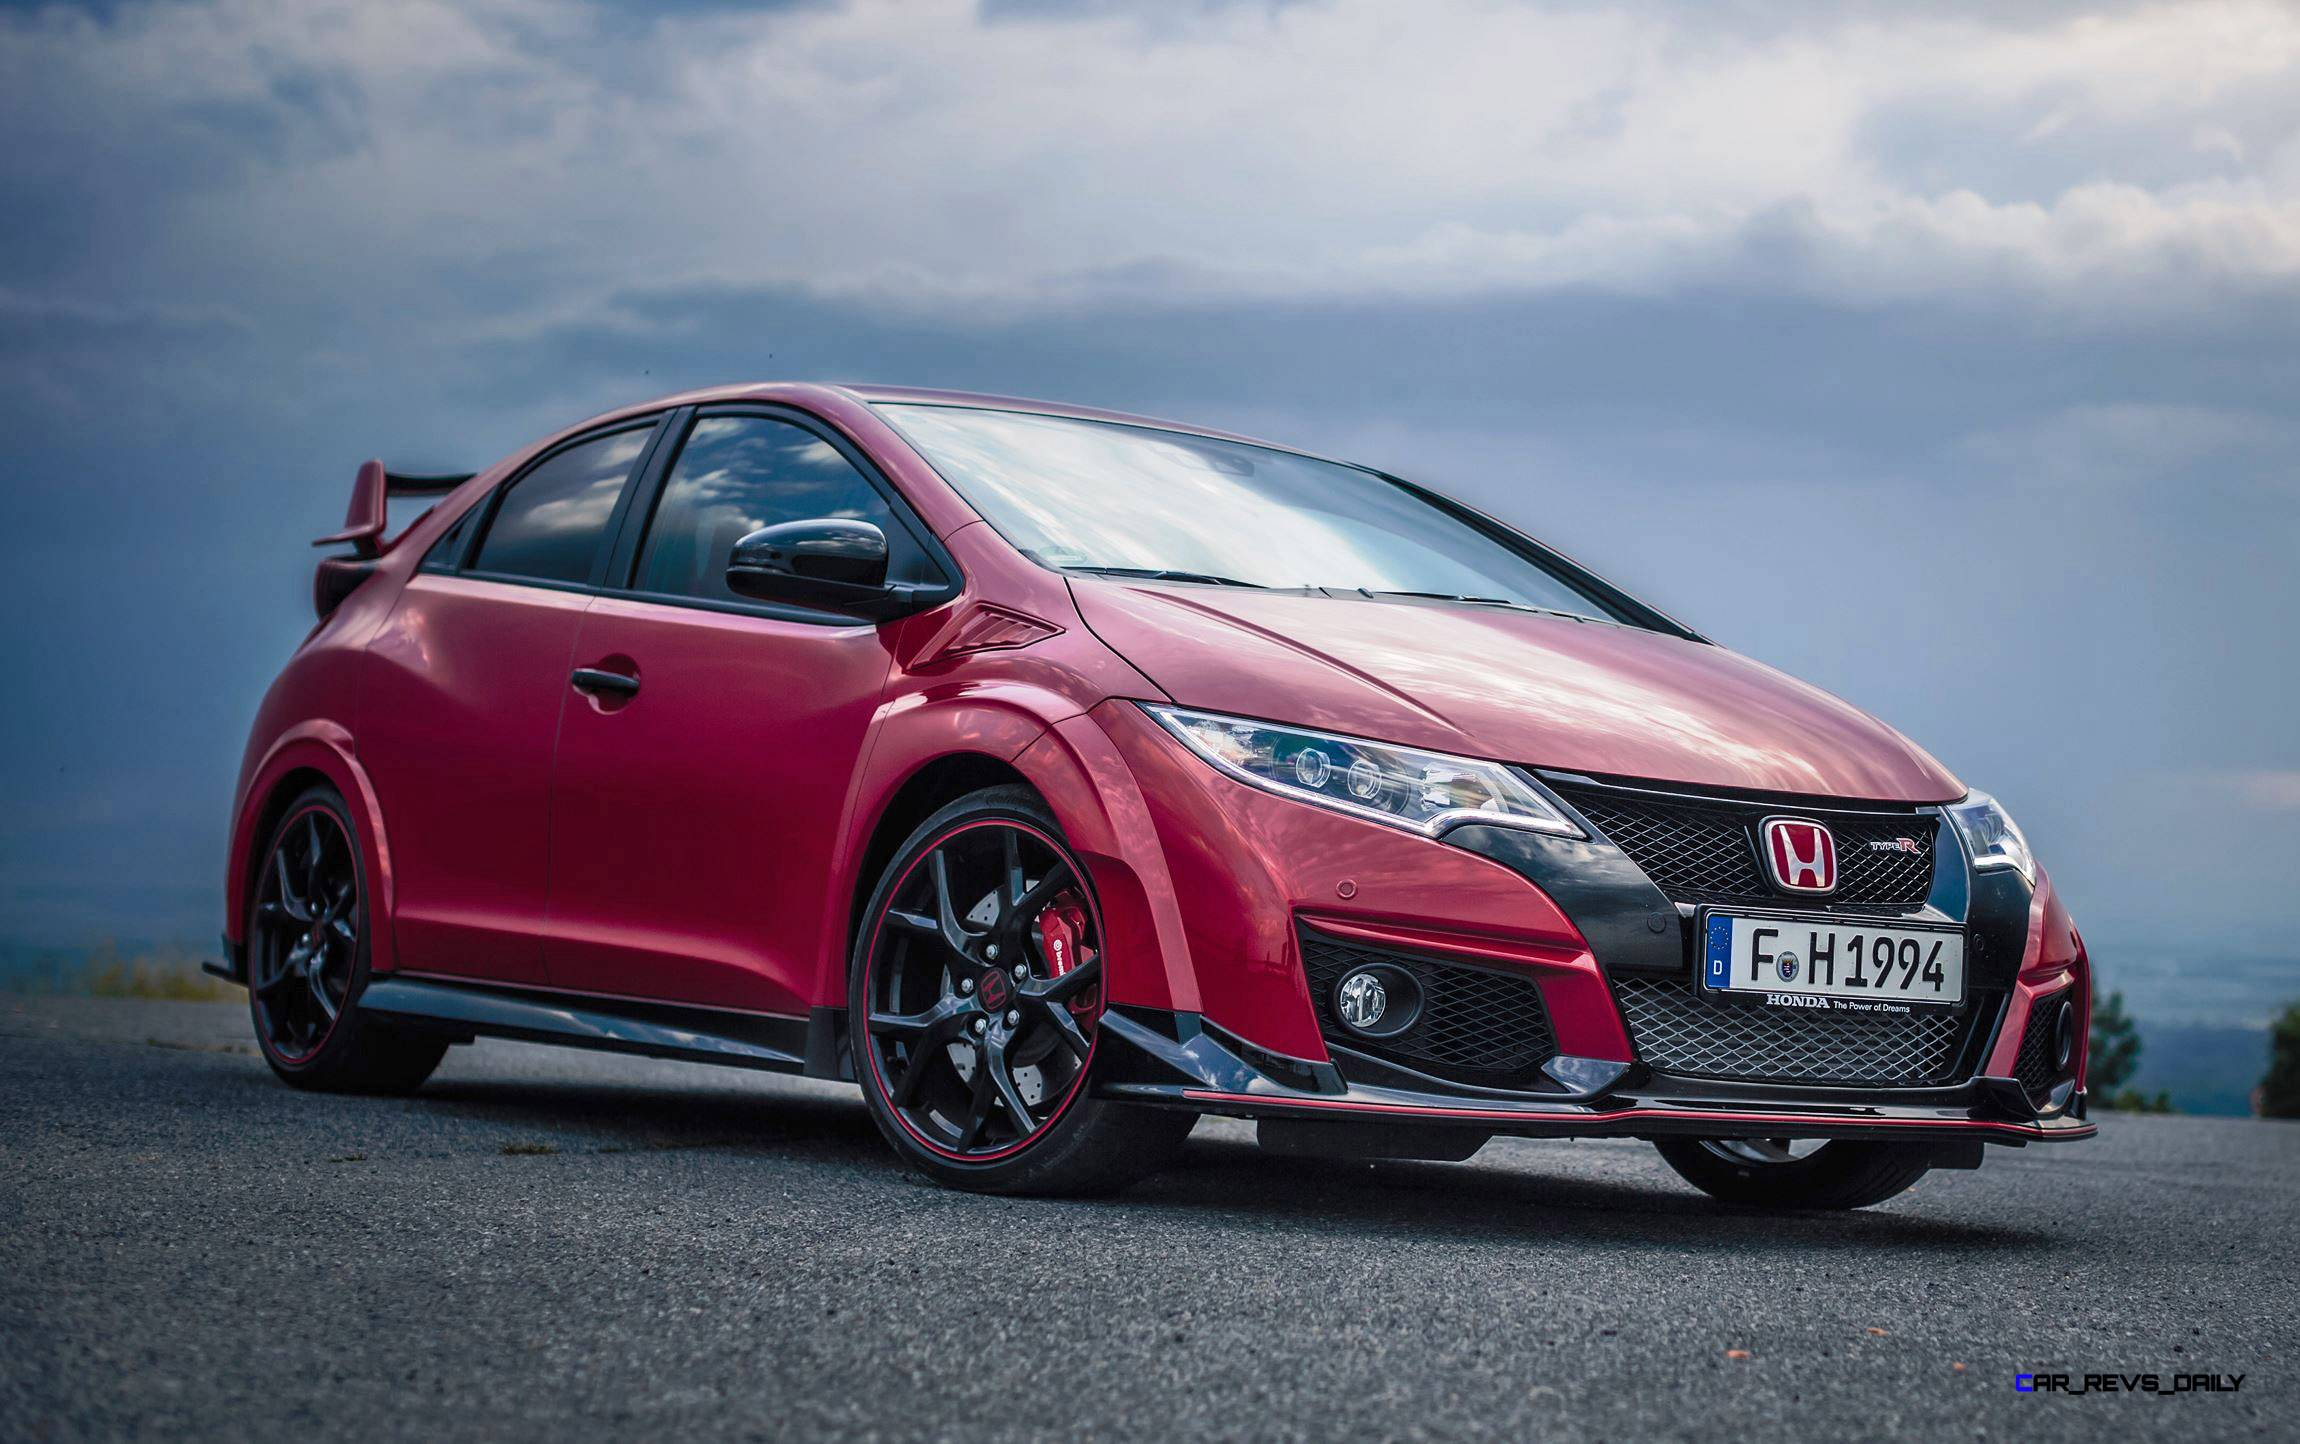 2015 honda civic type r european dynamic launch 12. Black Bedroom Furniture Sets. Home Design Ideas